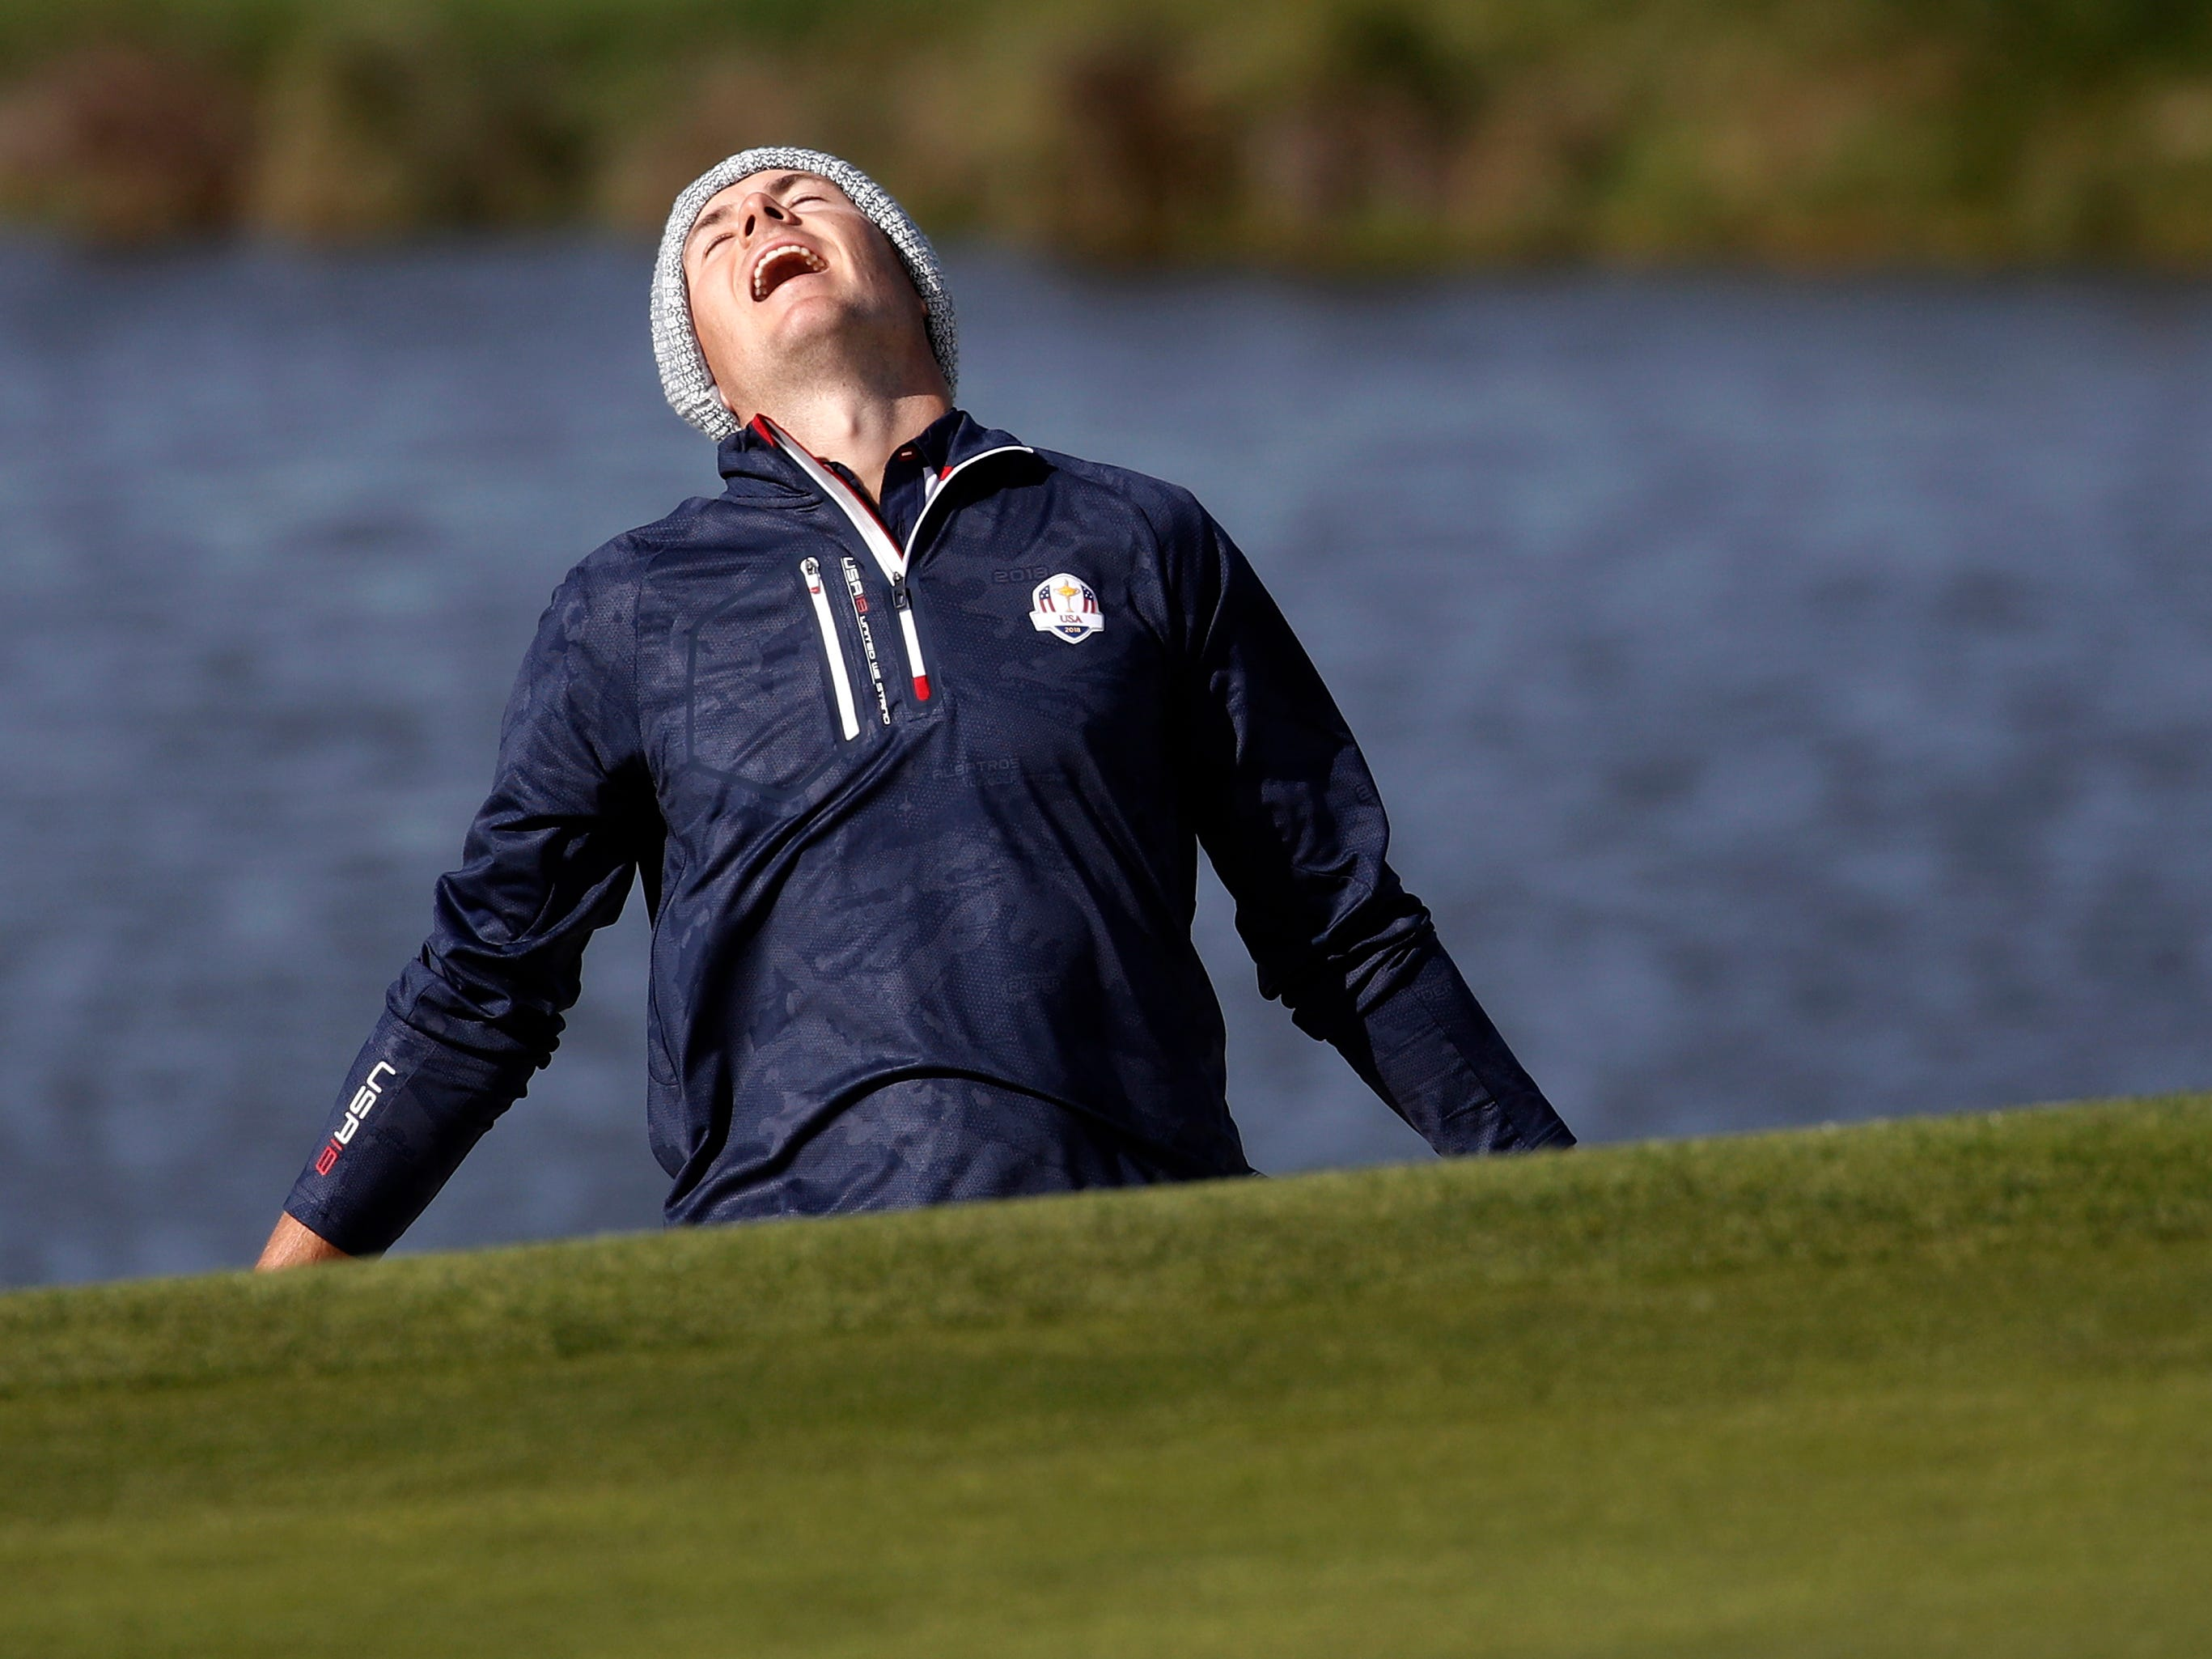 Jordan Spieth reacts to a shot during his morning fourball match on Saturday.